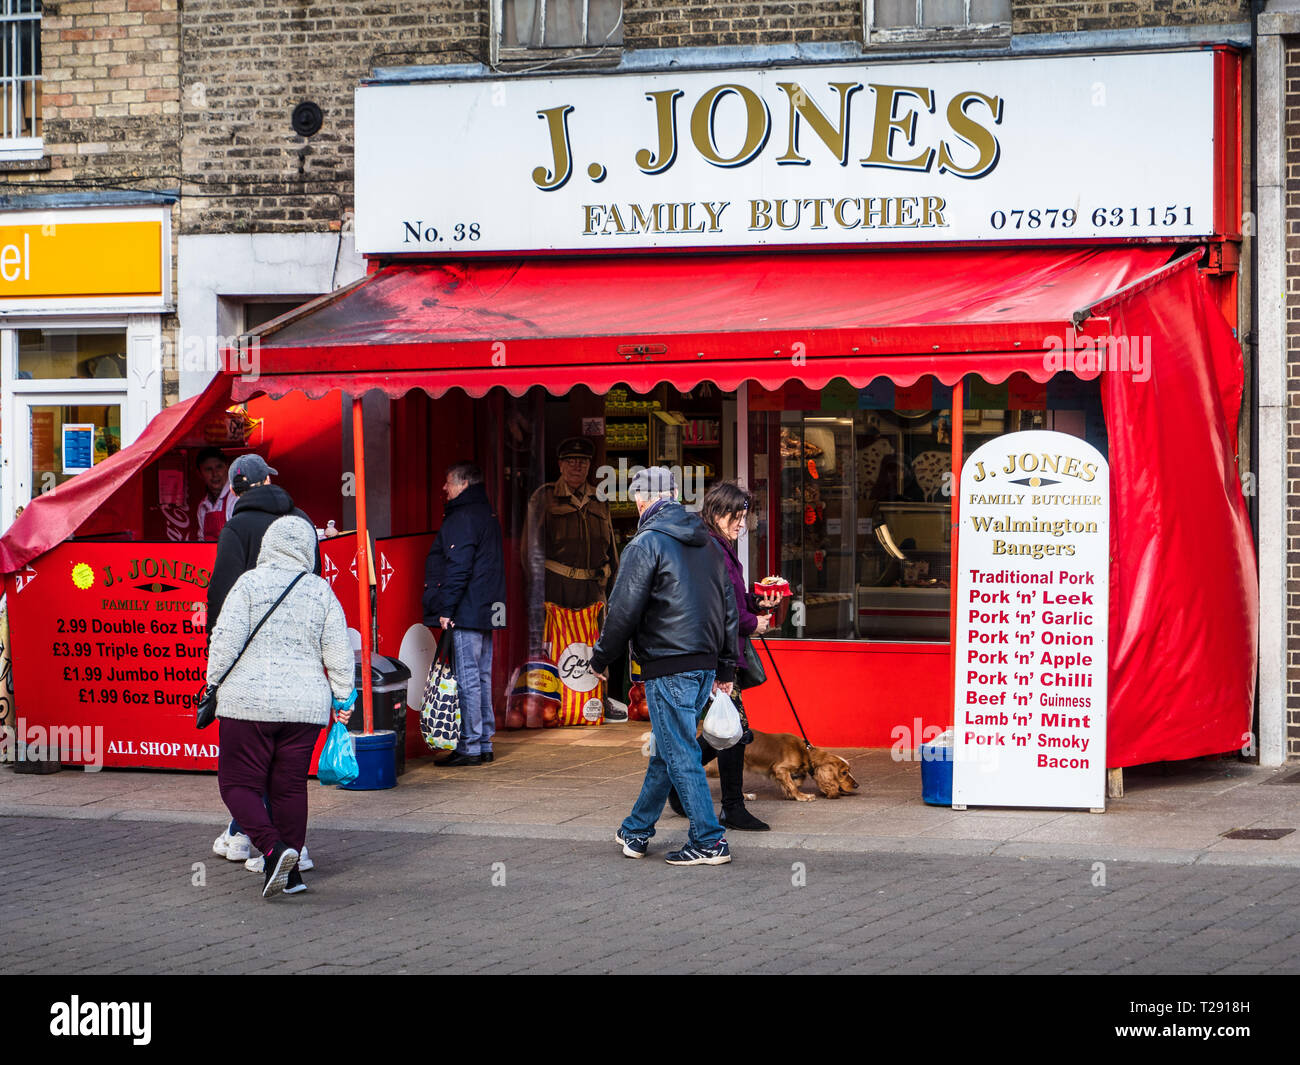 J Jones Family Butcher Thetford Norwich - Dad's Army theme - Dad's Army TV Series filmed in the Thetford area. - Stock Image